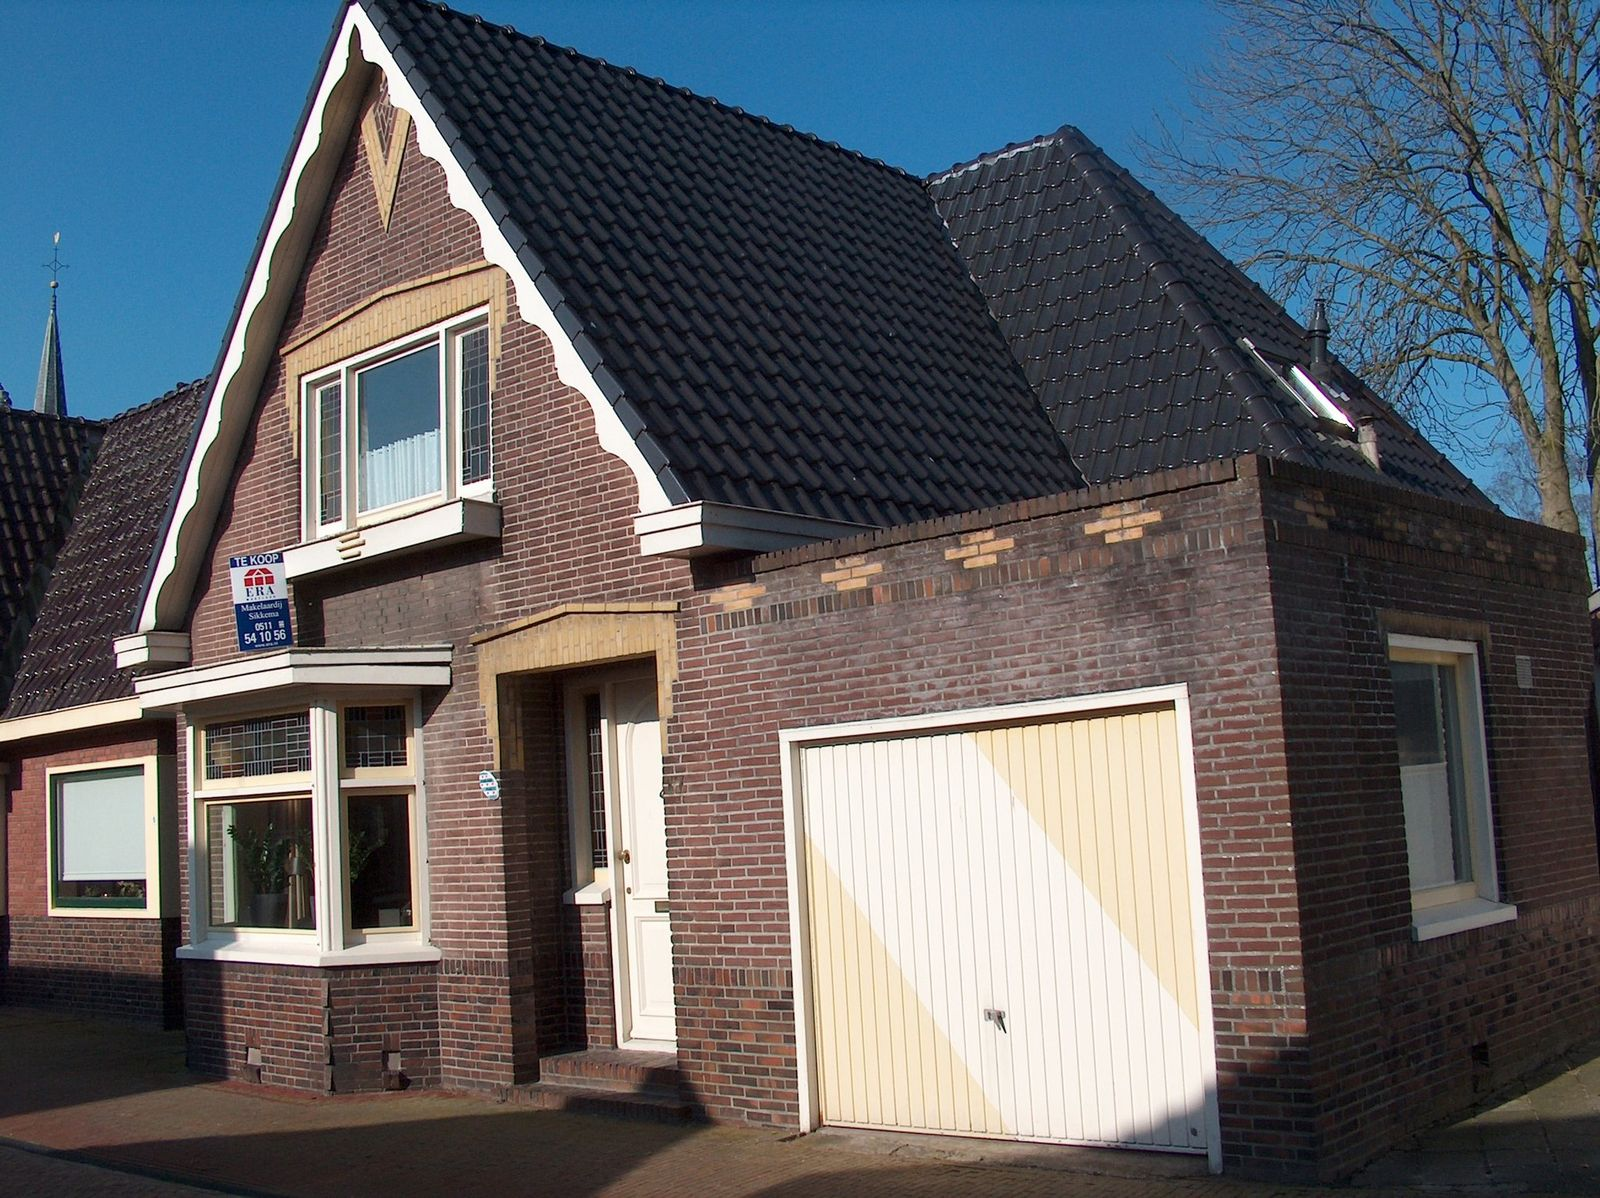 Herestraat 17, Burum